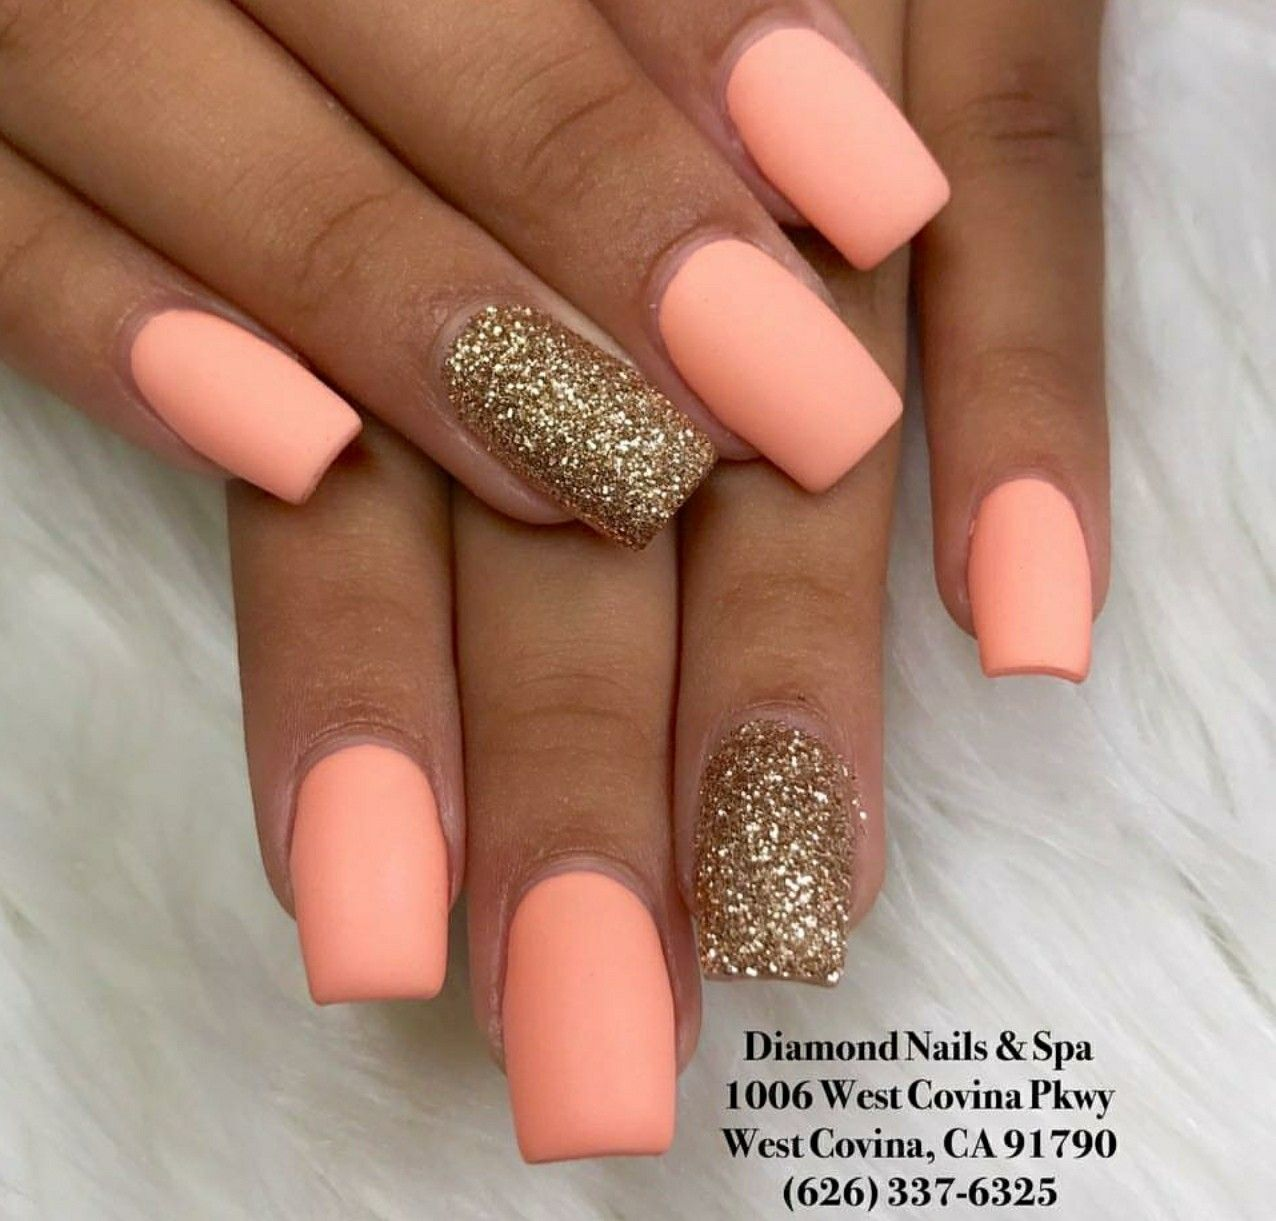 87 Cute Short Acrylic Square Nails Ideas For Summer Nails Pink Gel Nails Short Square Acrylic Nails Square Acrylic Nails